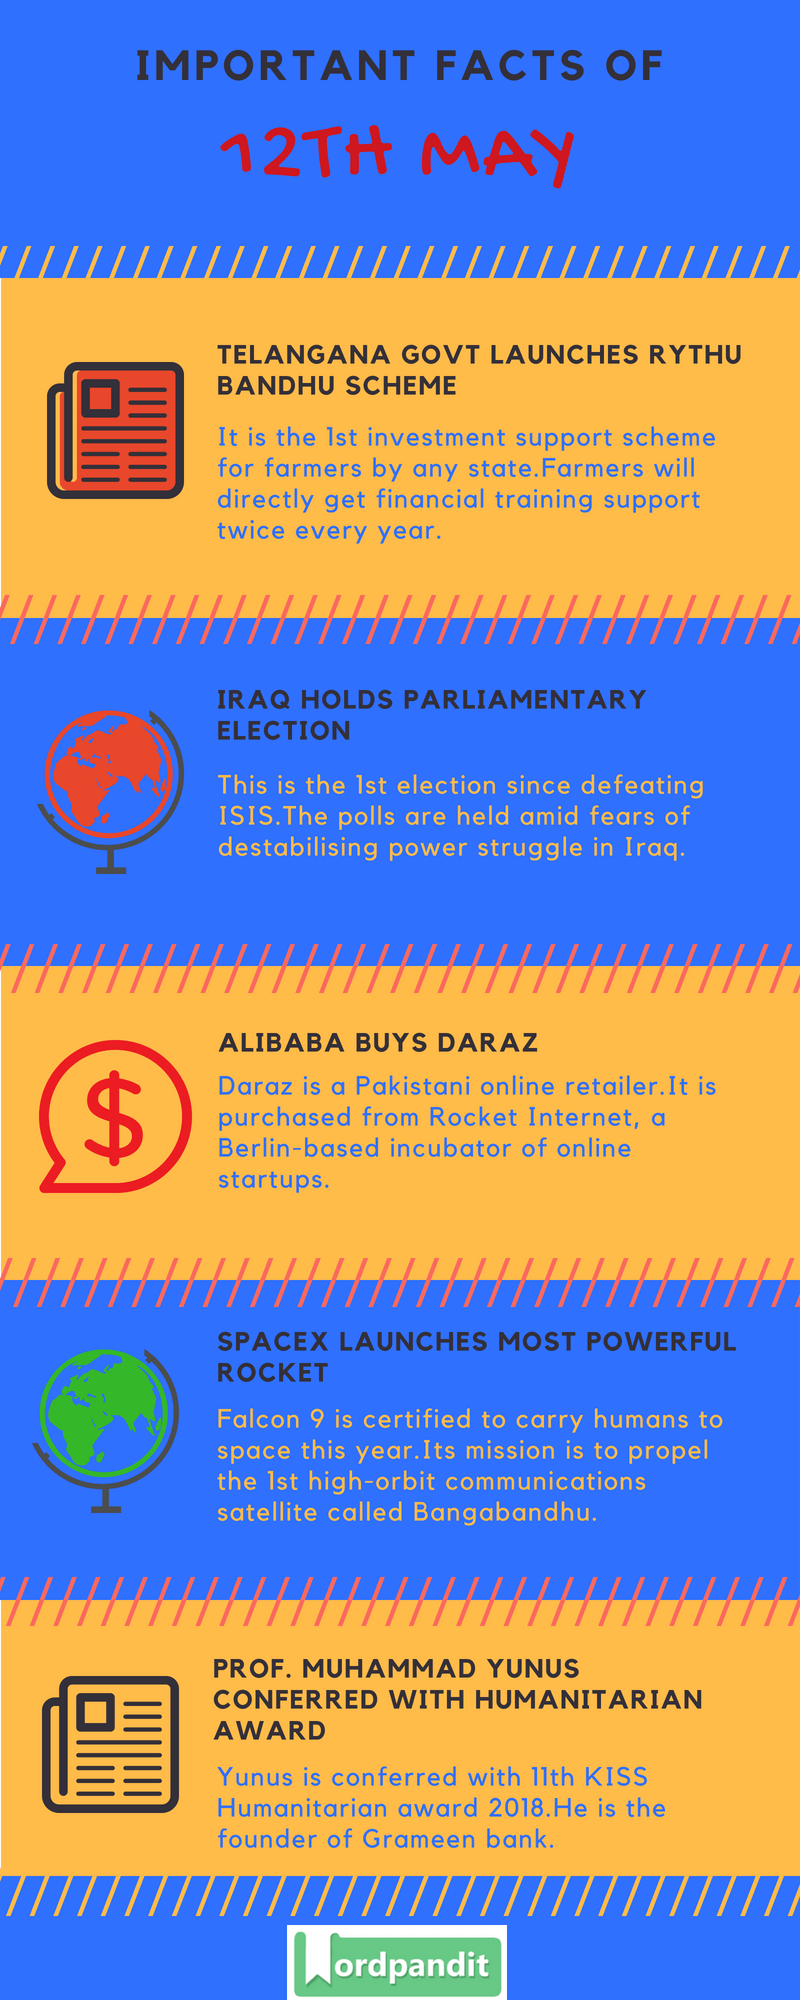 Daily Current Affairs 12 May 2018 Current Affairs Quiz May 12 2018 Current Affairs Infographic